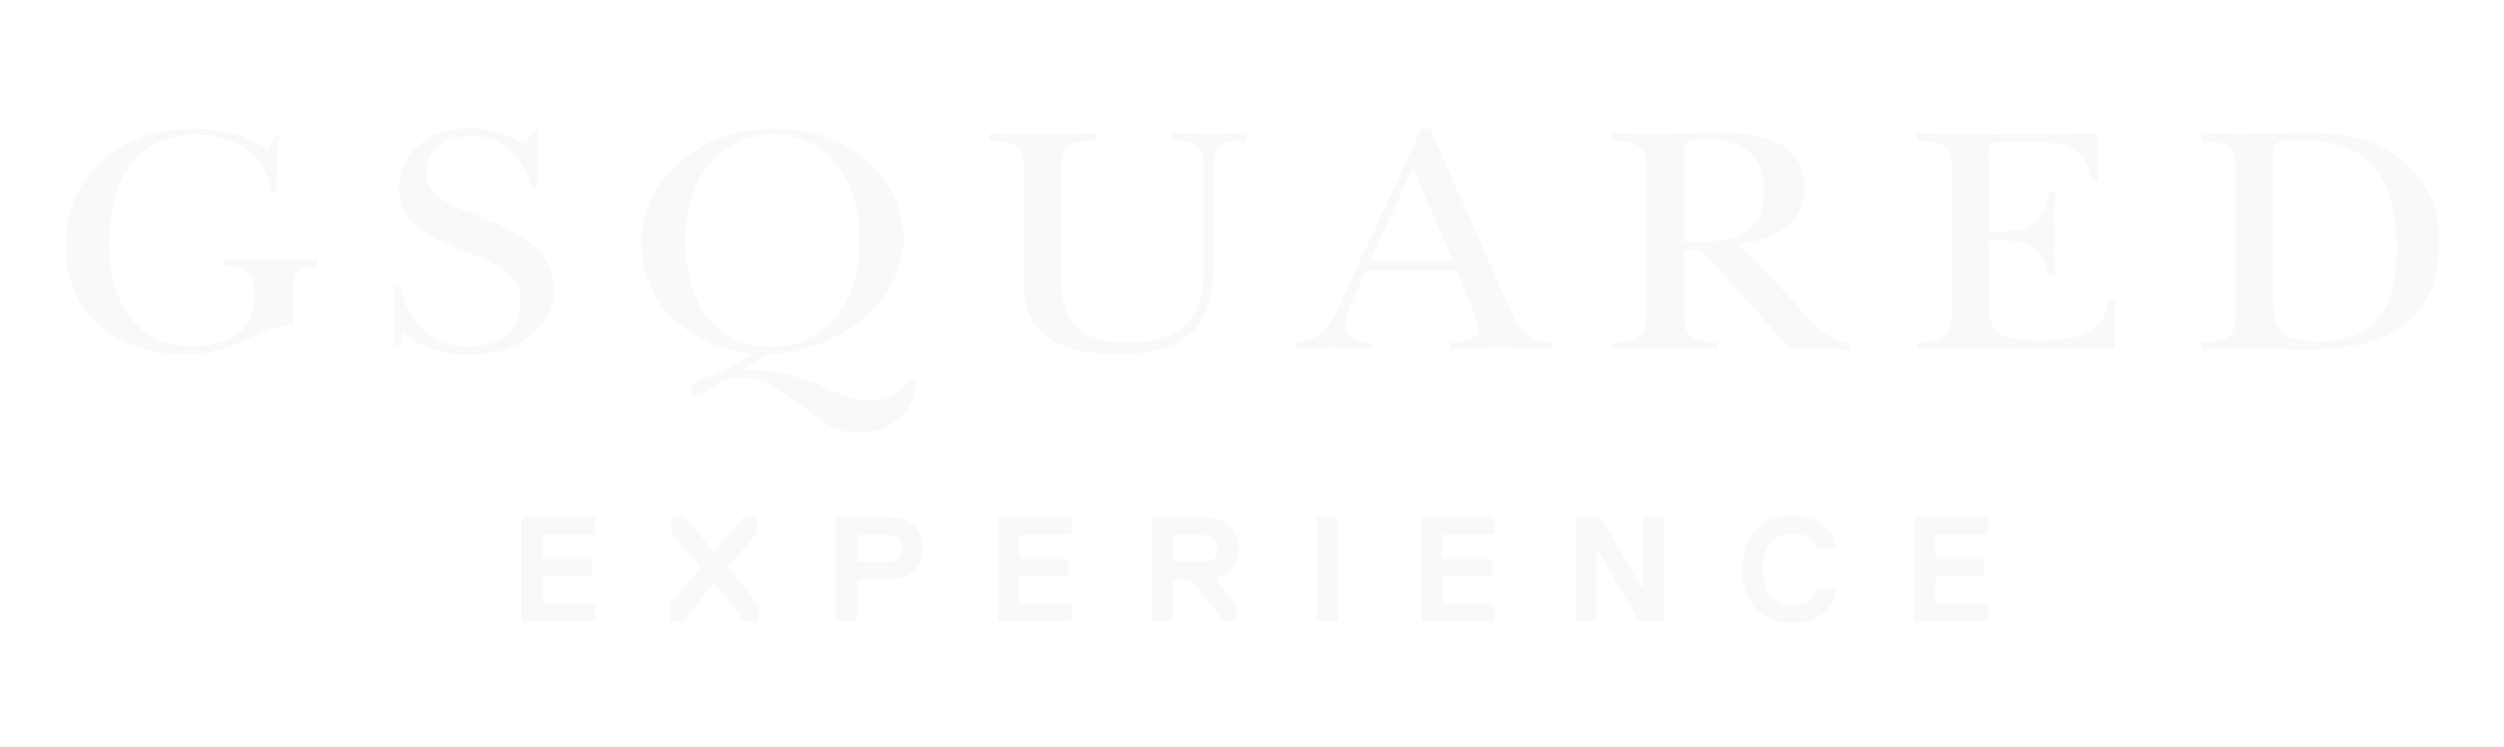 GSquared Experience Fitness Programme Online | Online Fitness Training at Home | Home Exercise and Workout Training Online